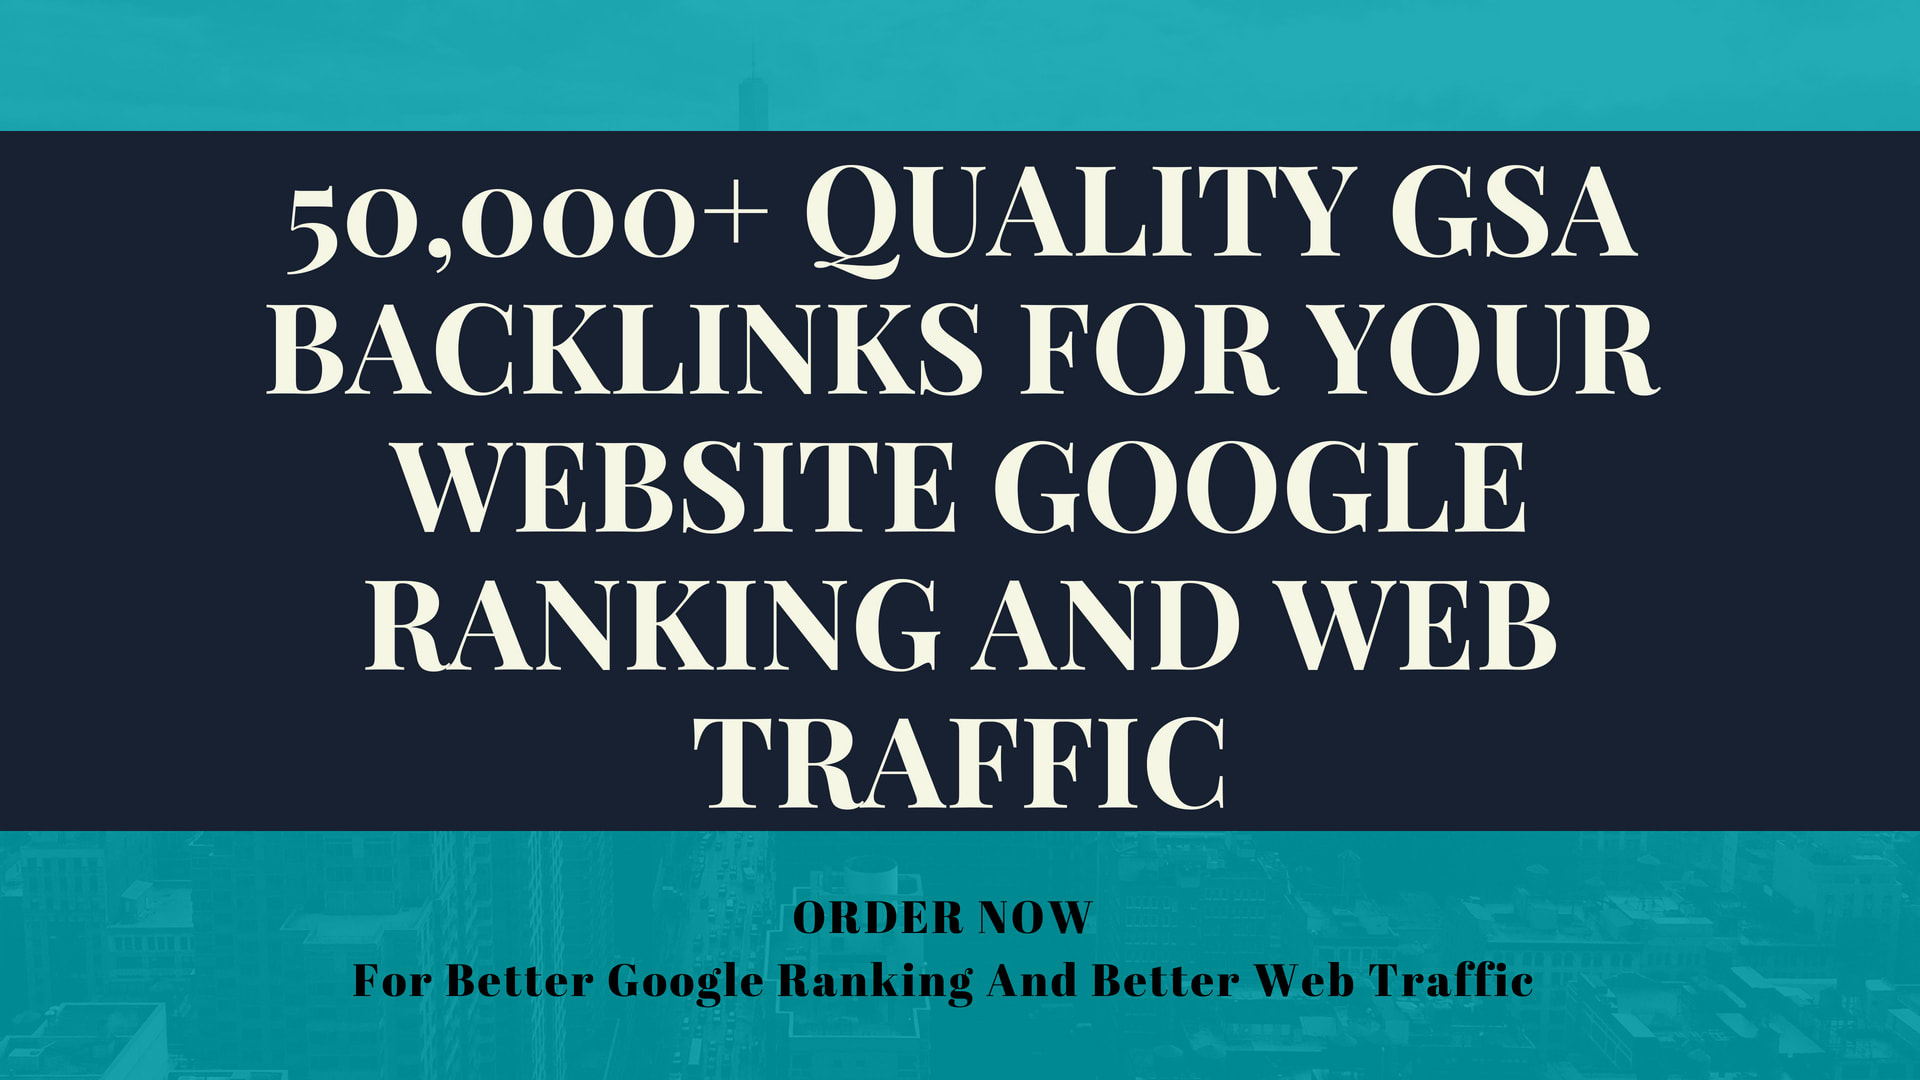 create 50,000 gsa backlinks for your website ranking and traffic